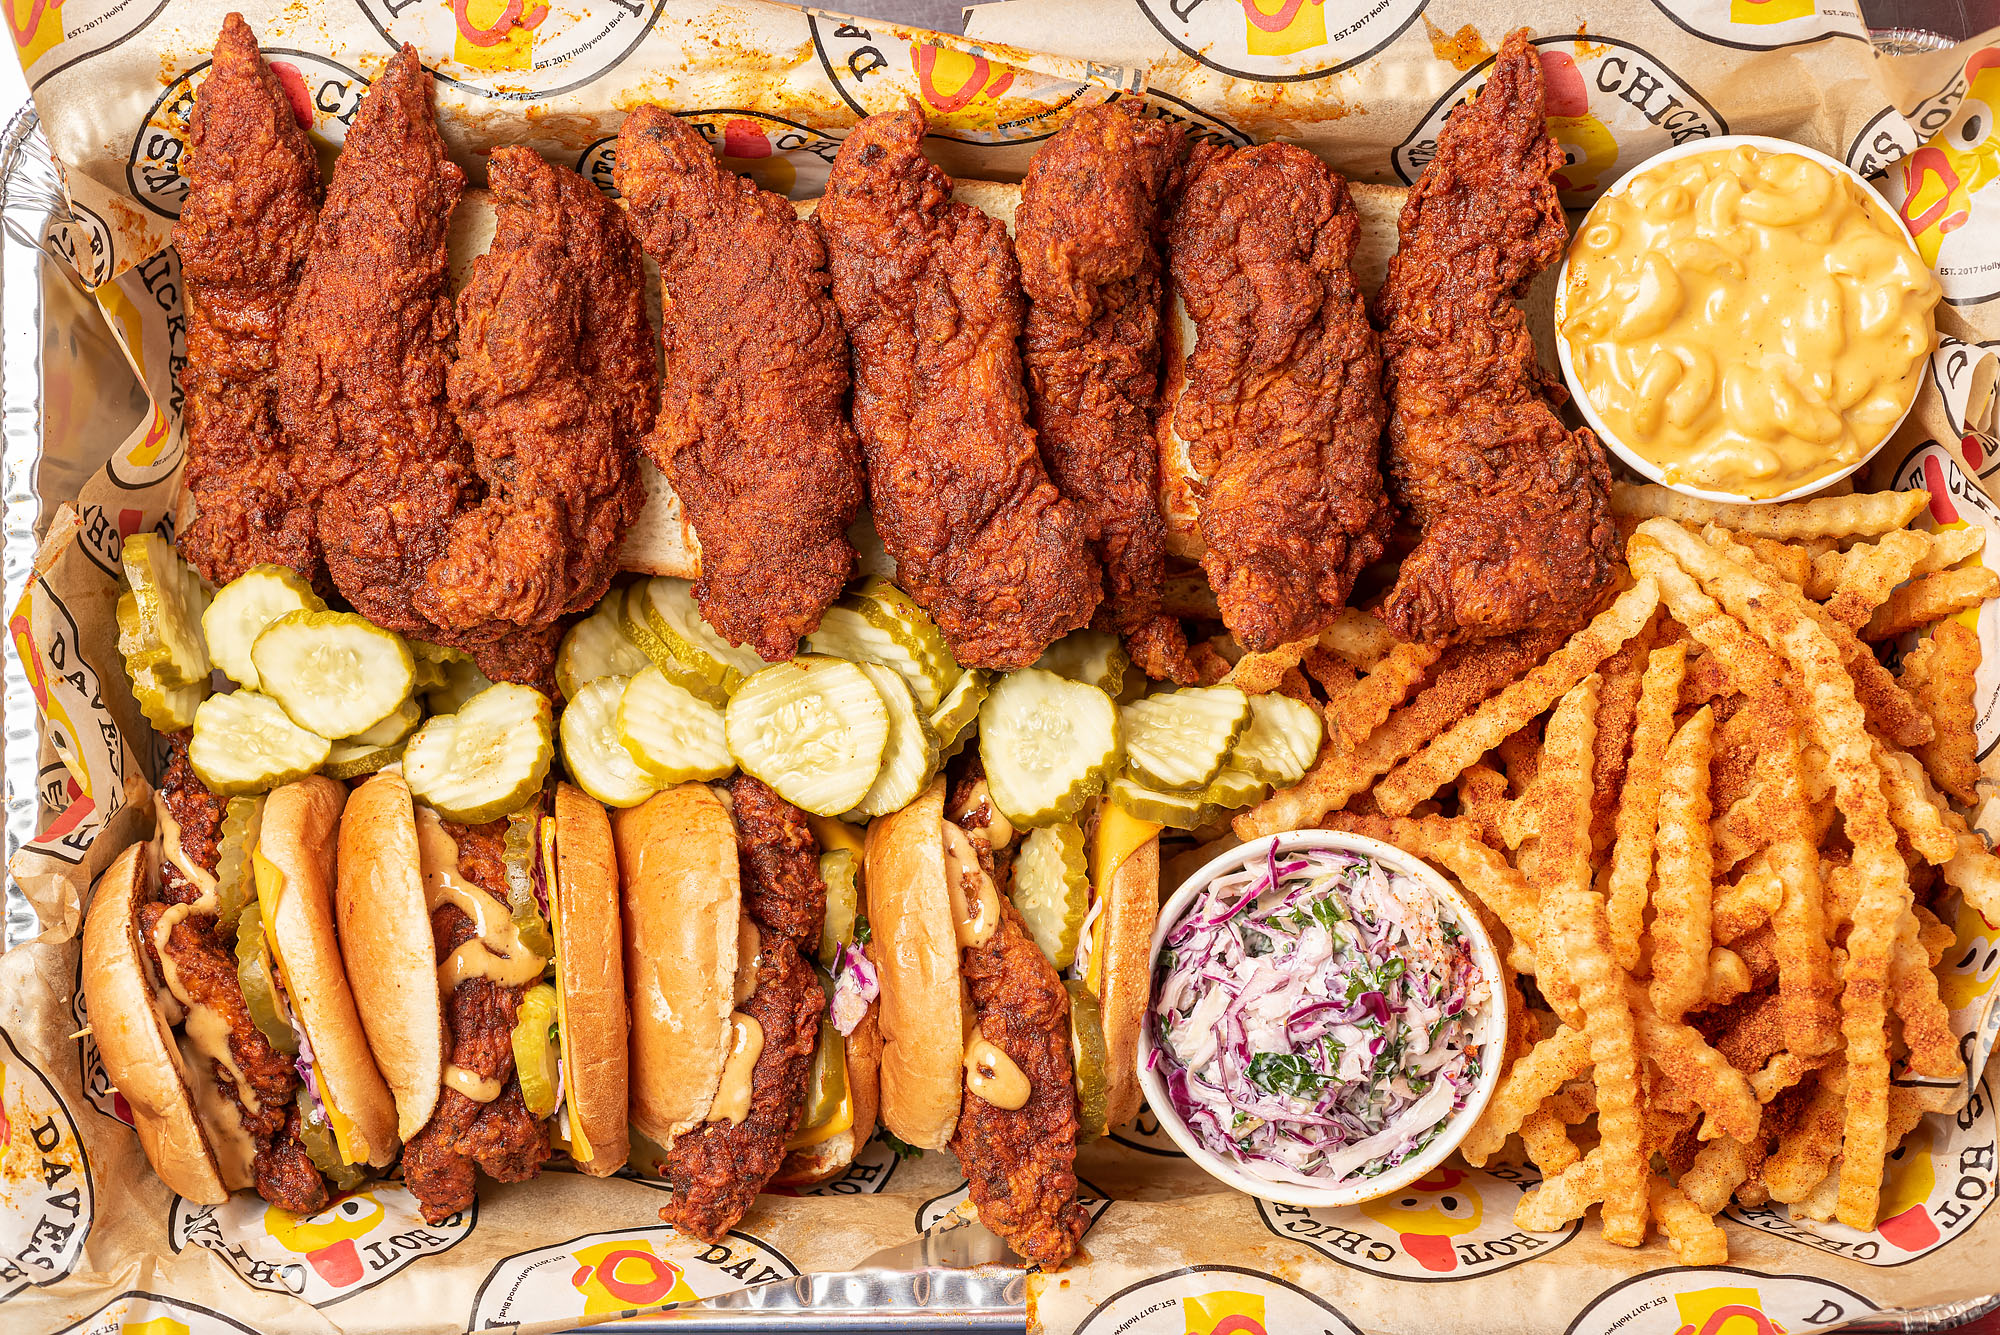 Dave's Hot Chicken Expands Into the Heart of LA's Spicy Bird Country